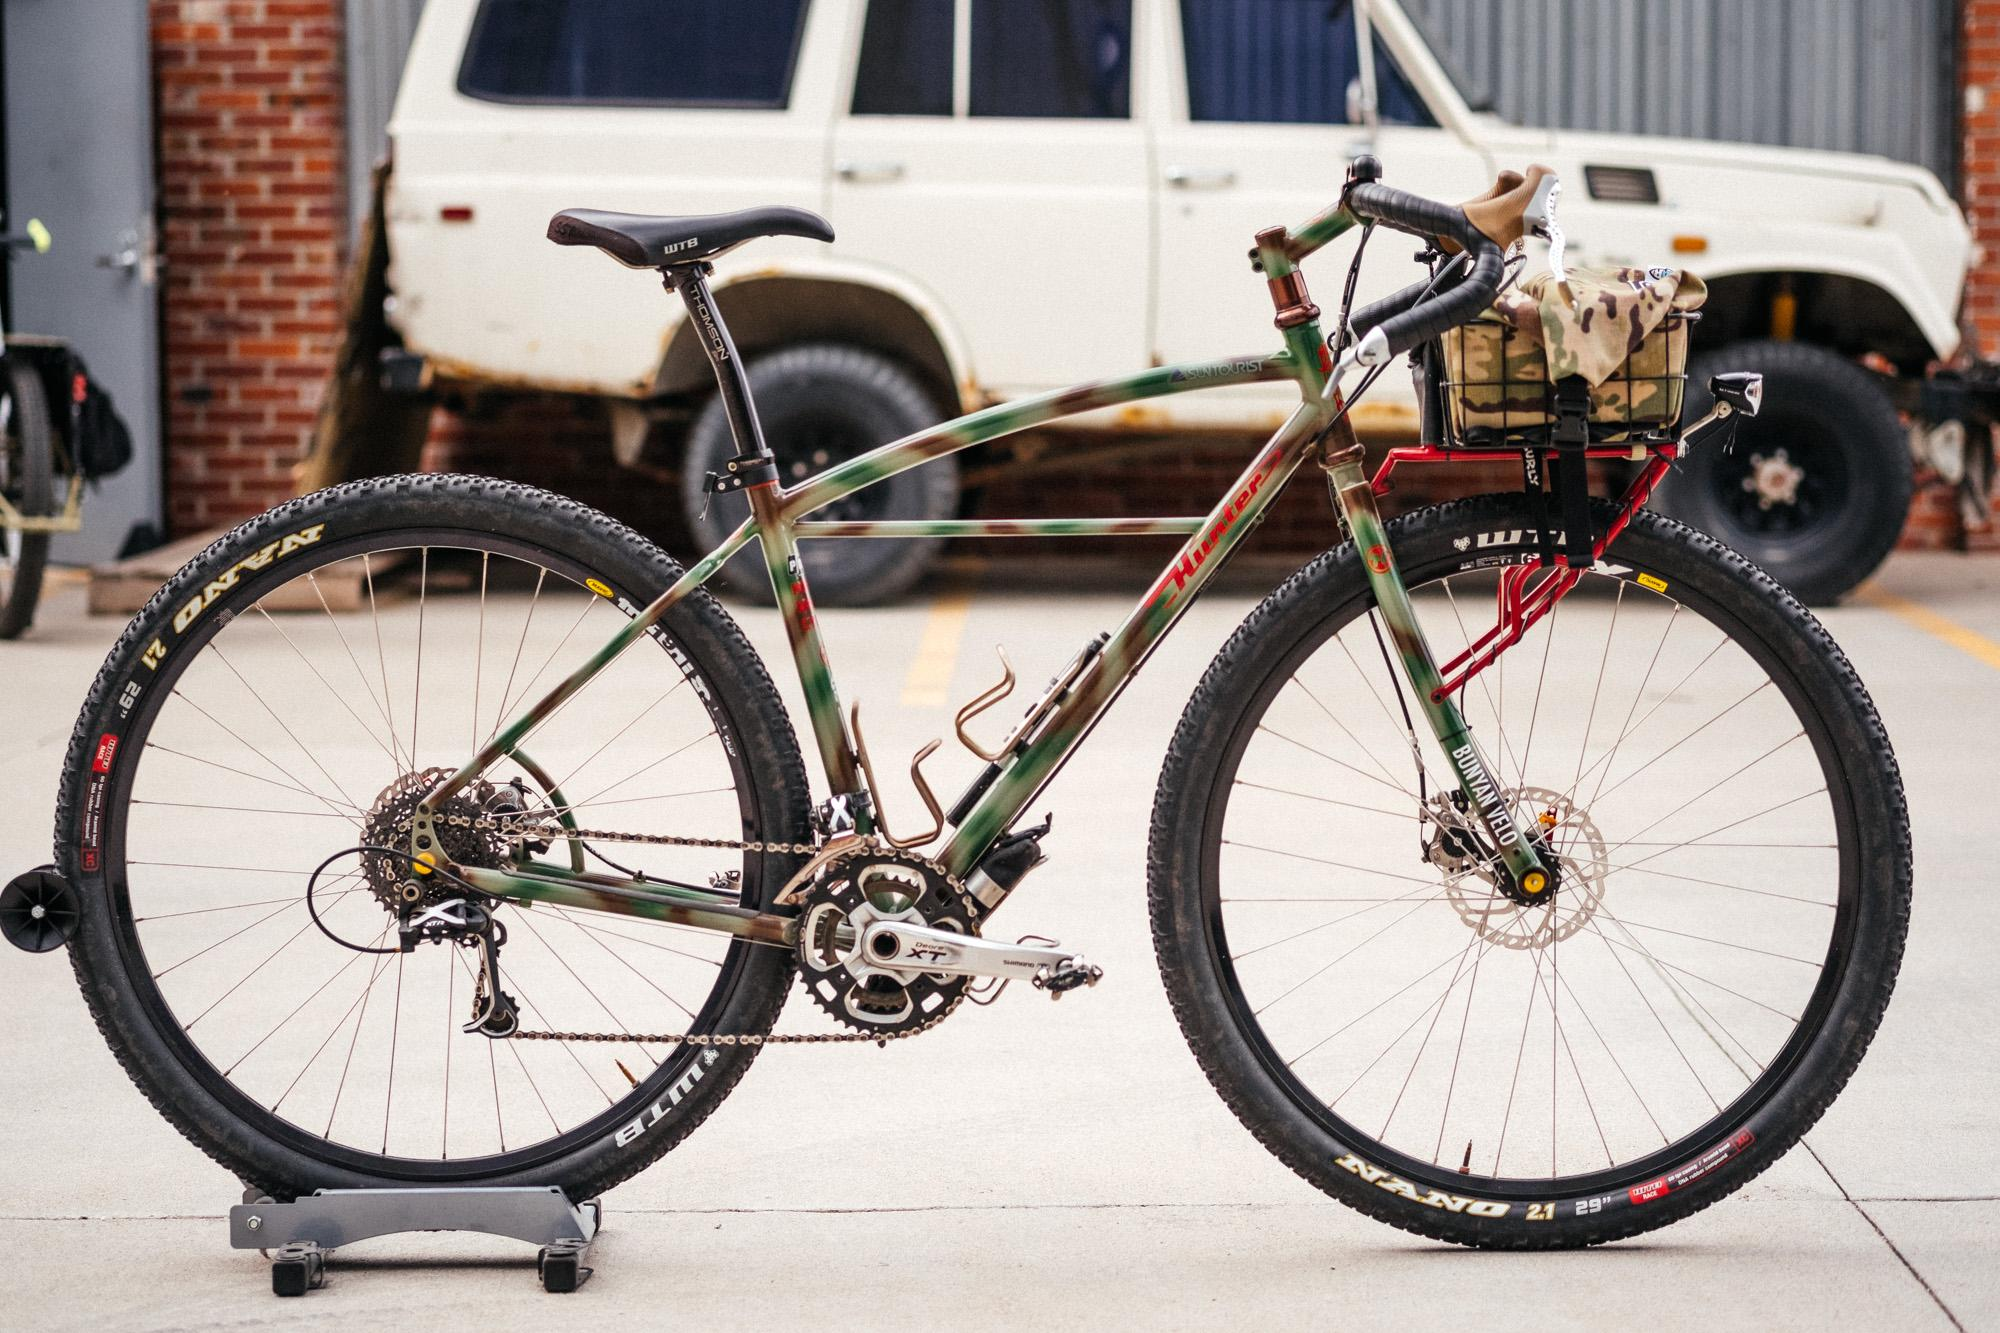 Nate from Monkey Wrench Cycles' Hunter Commando Tourer